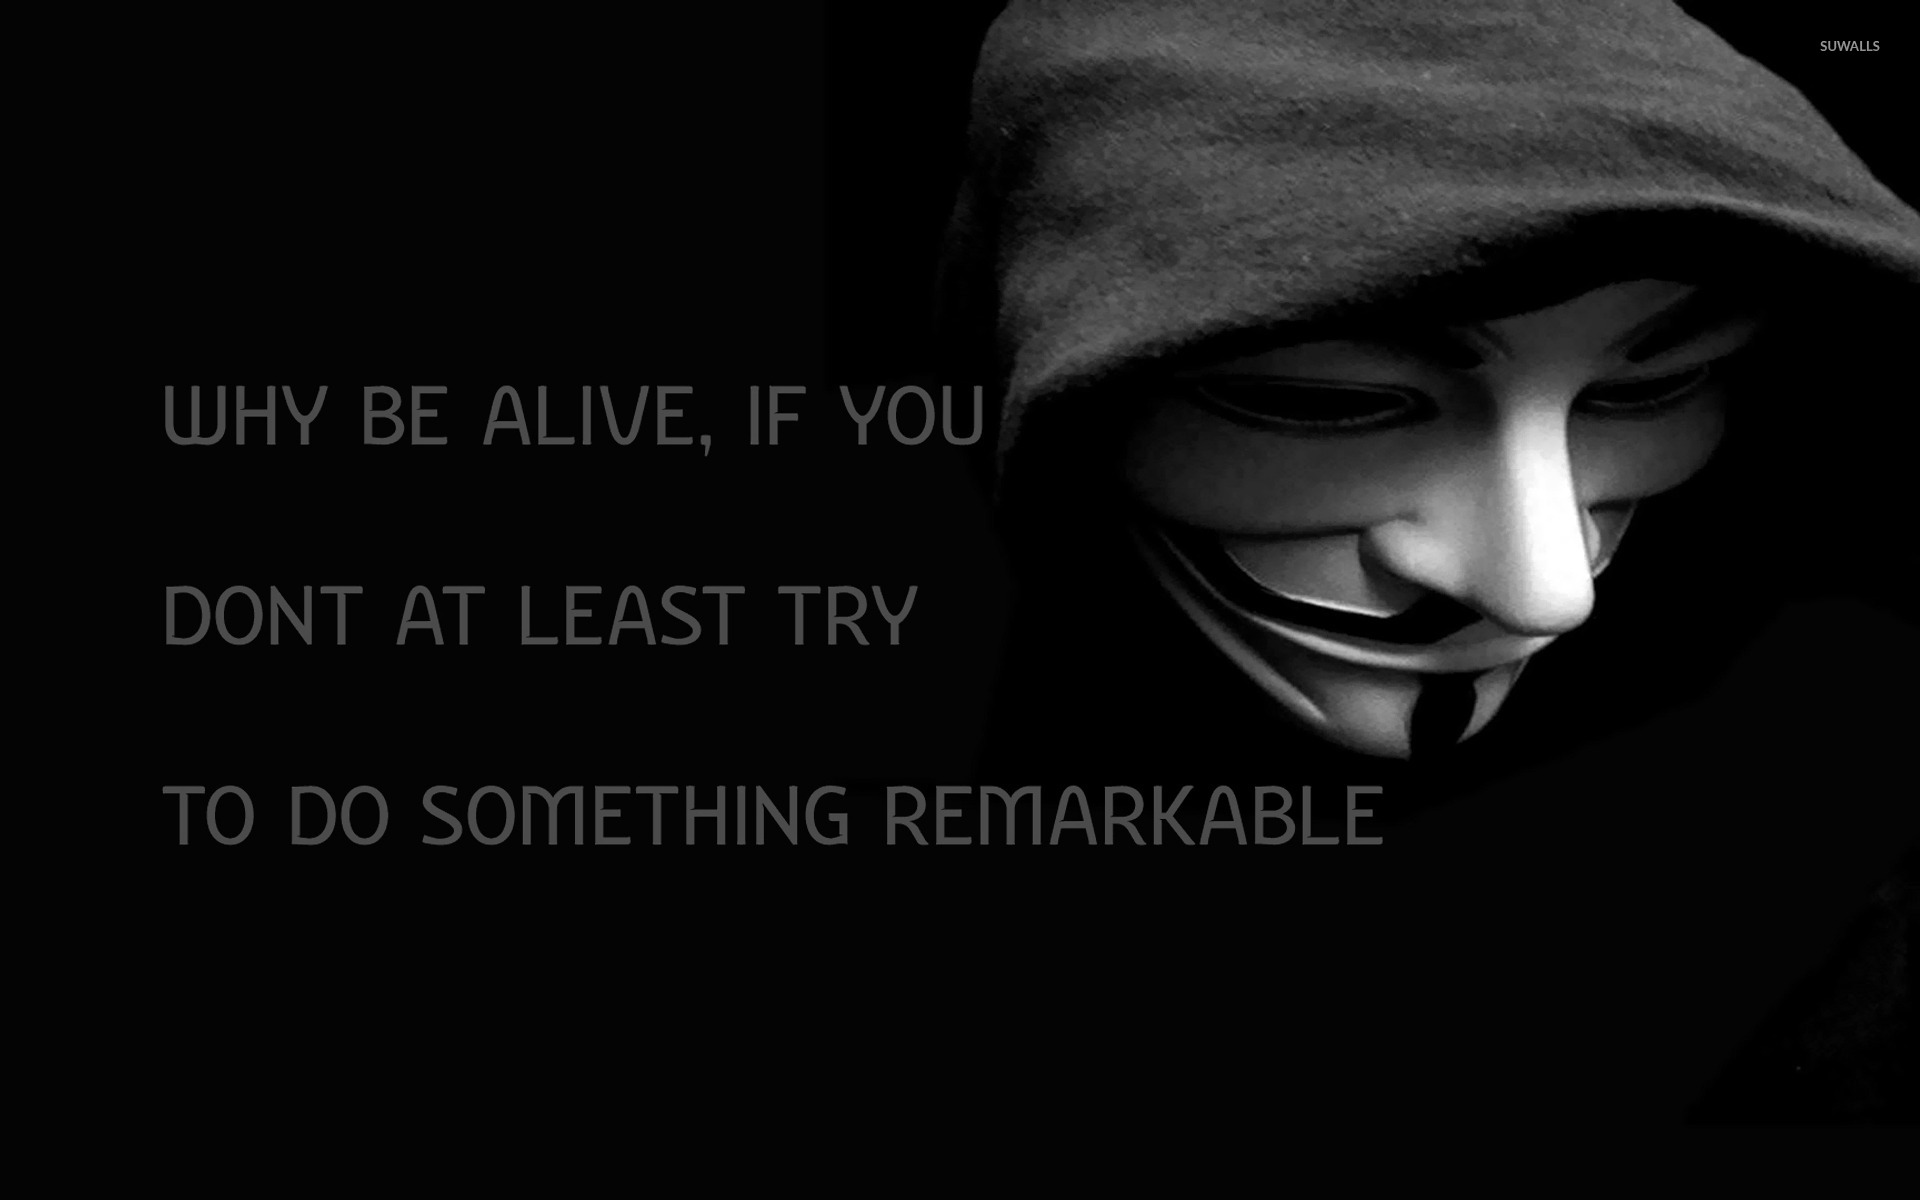 Why Be Alive Wallpaper